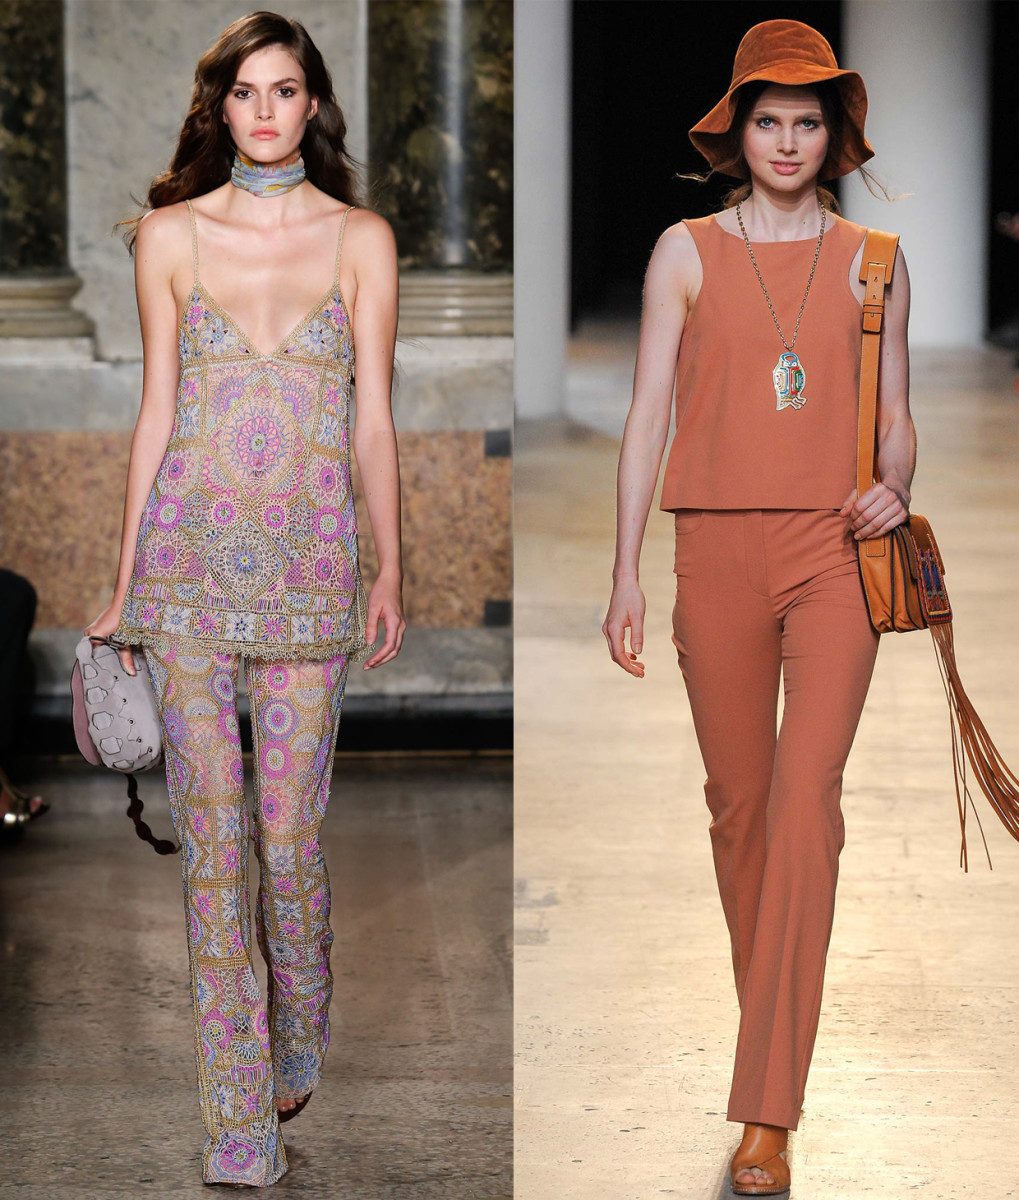 Emilio Pucci spring 2015 and Paul & Joe spring 2015. Photos: Imaxtree